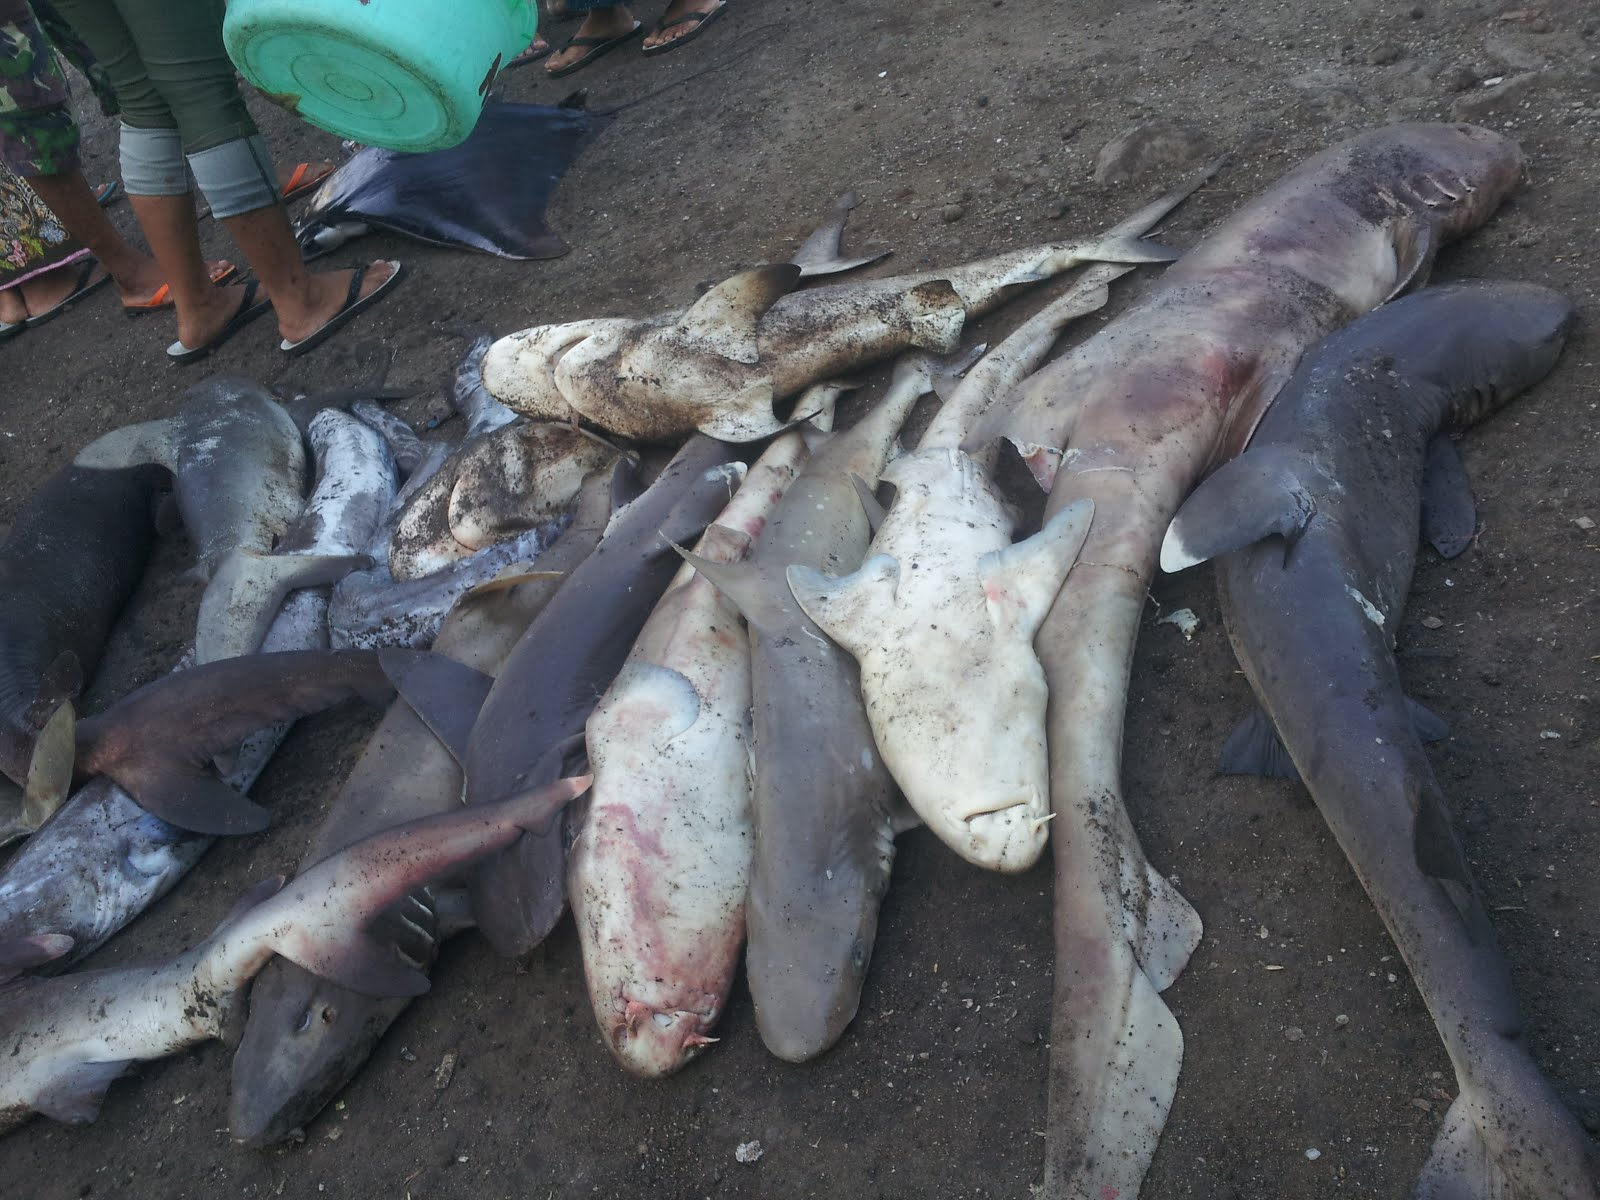 sharks on the ground